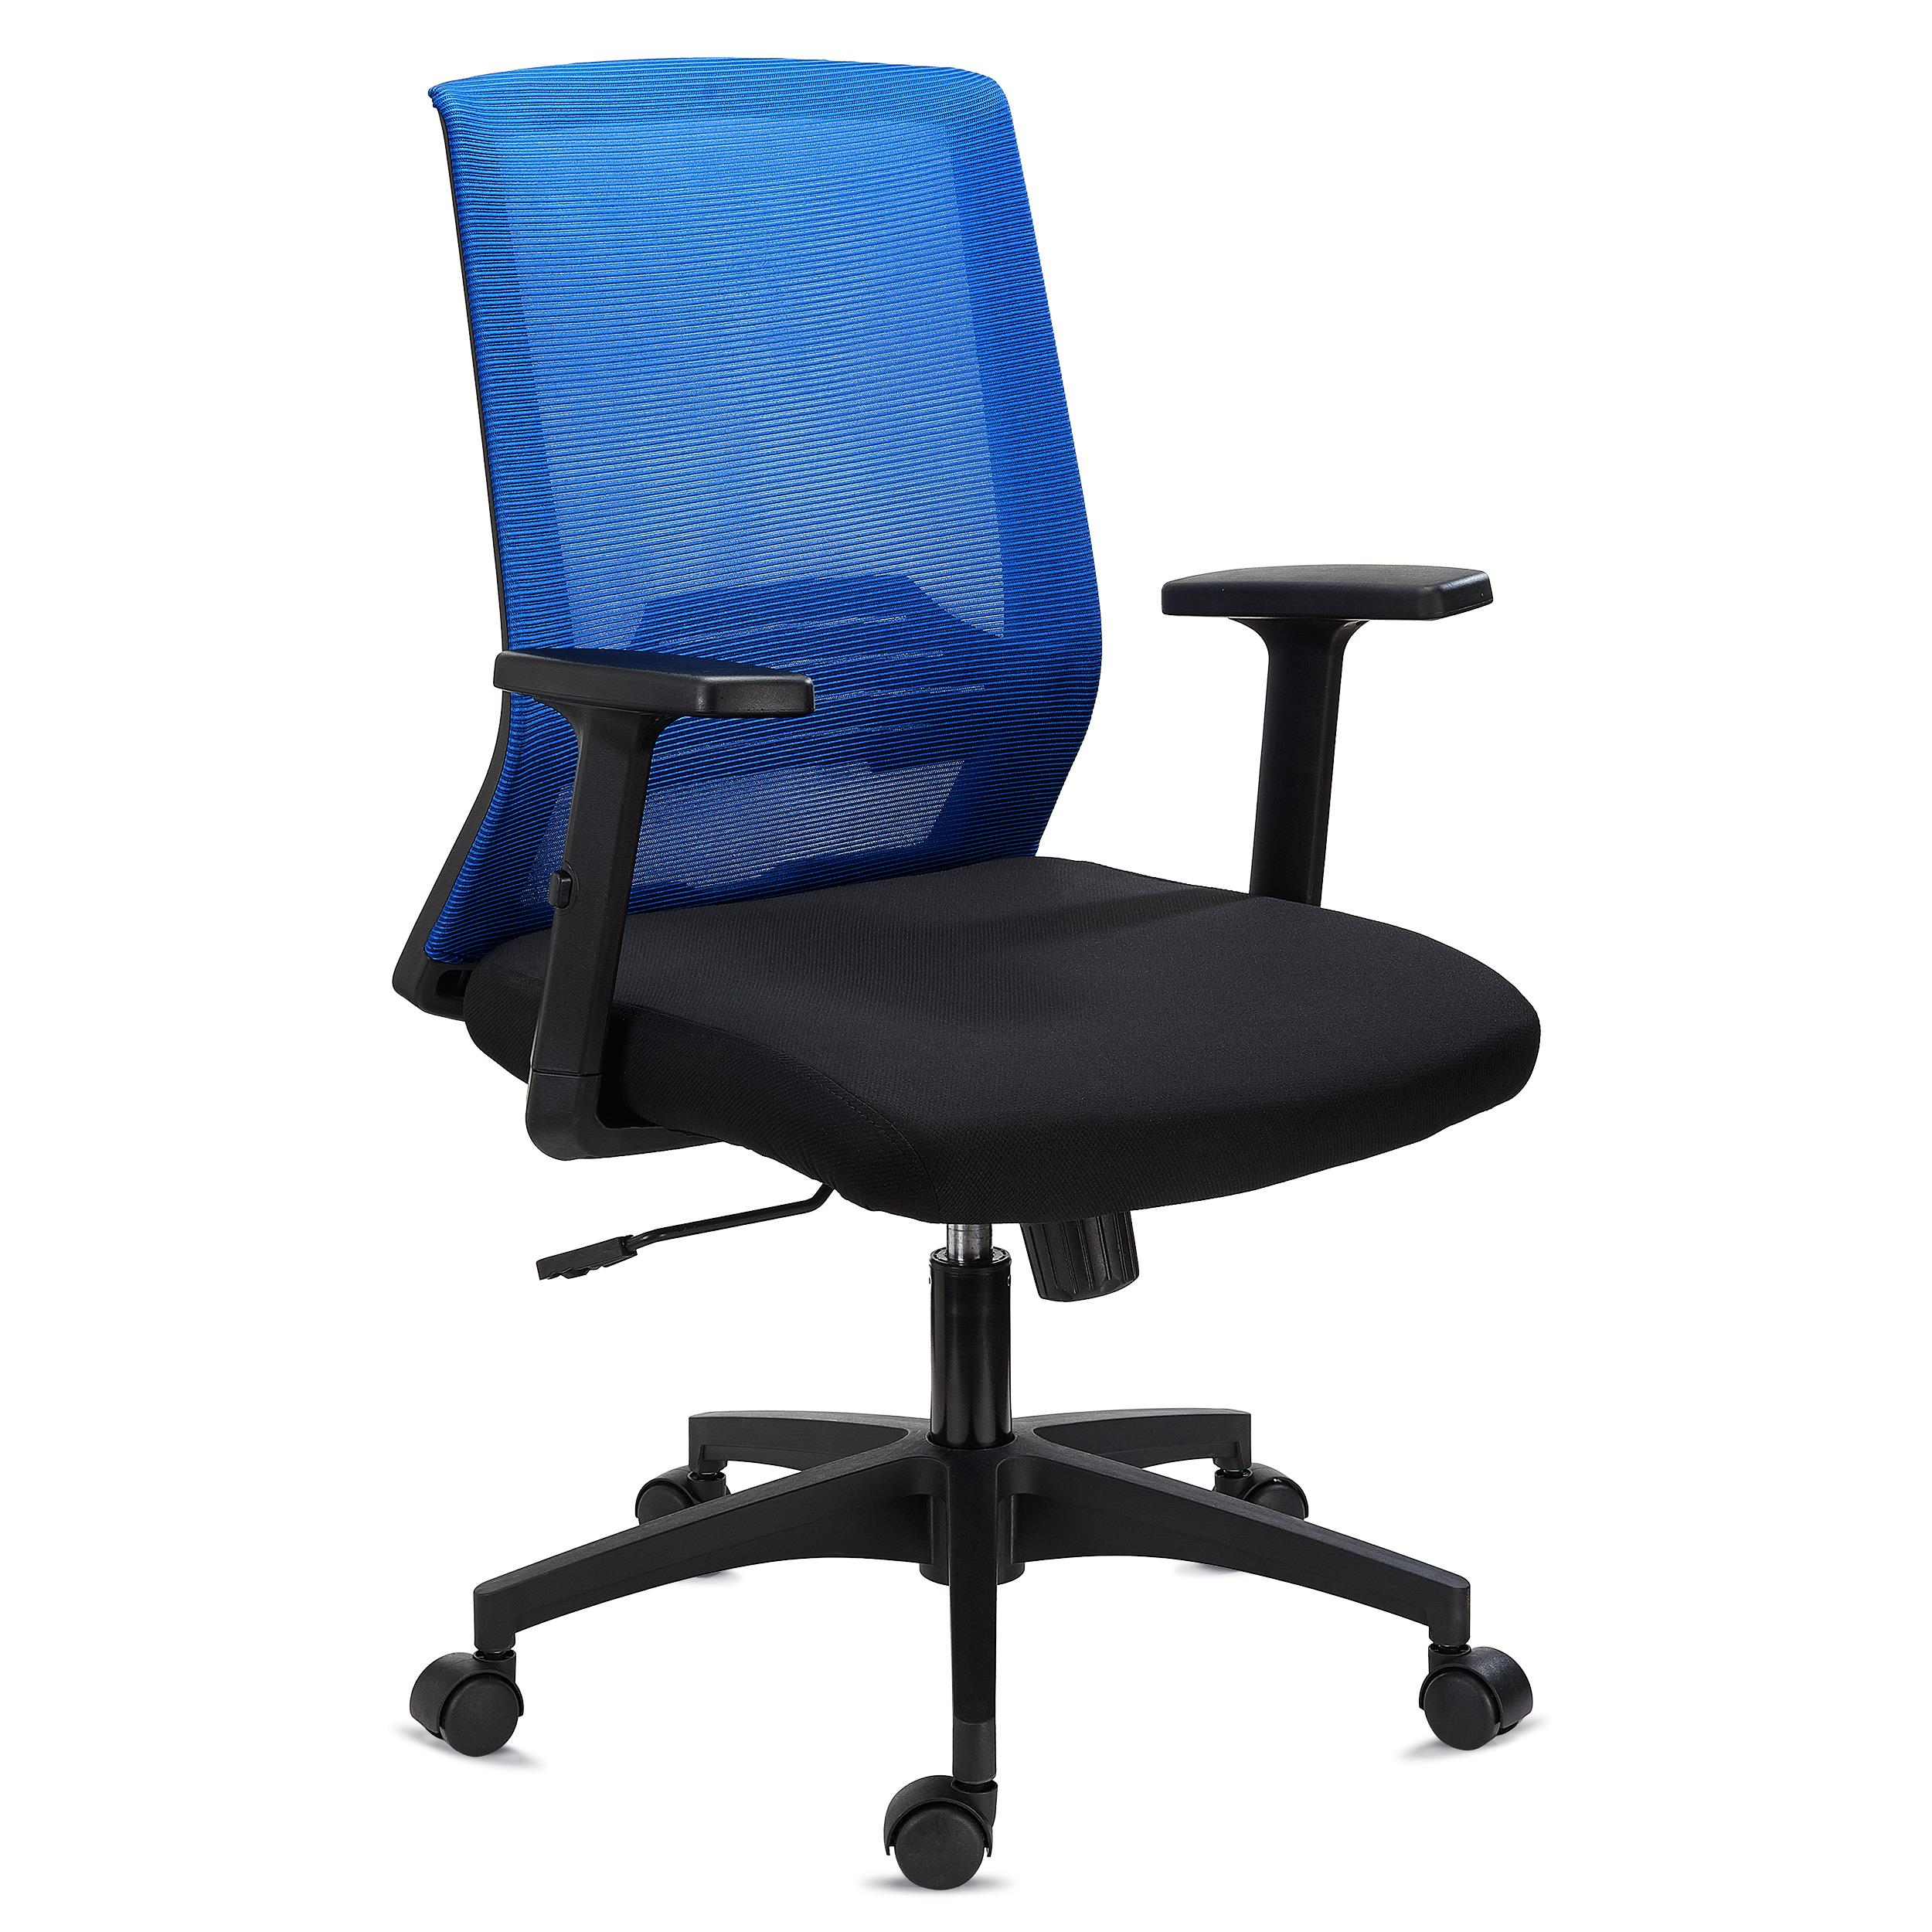 DEMO# Chaise de Bureau MIAMI, Support Lombaire, Accoudoirs Ajustables, Confortable et Robuste, Bleu